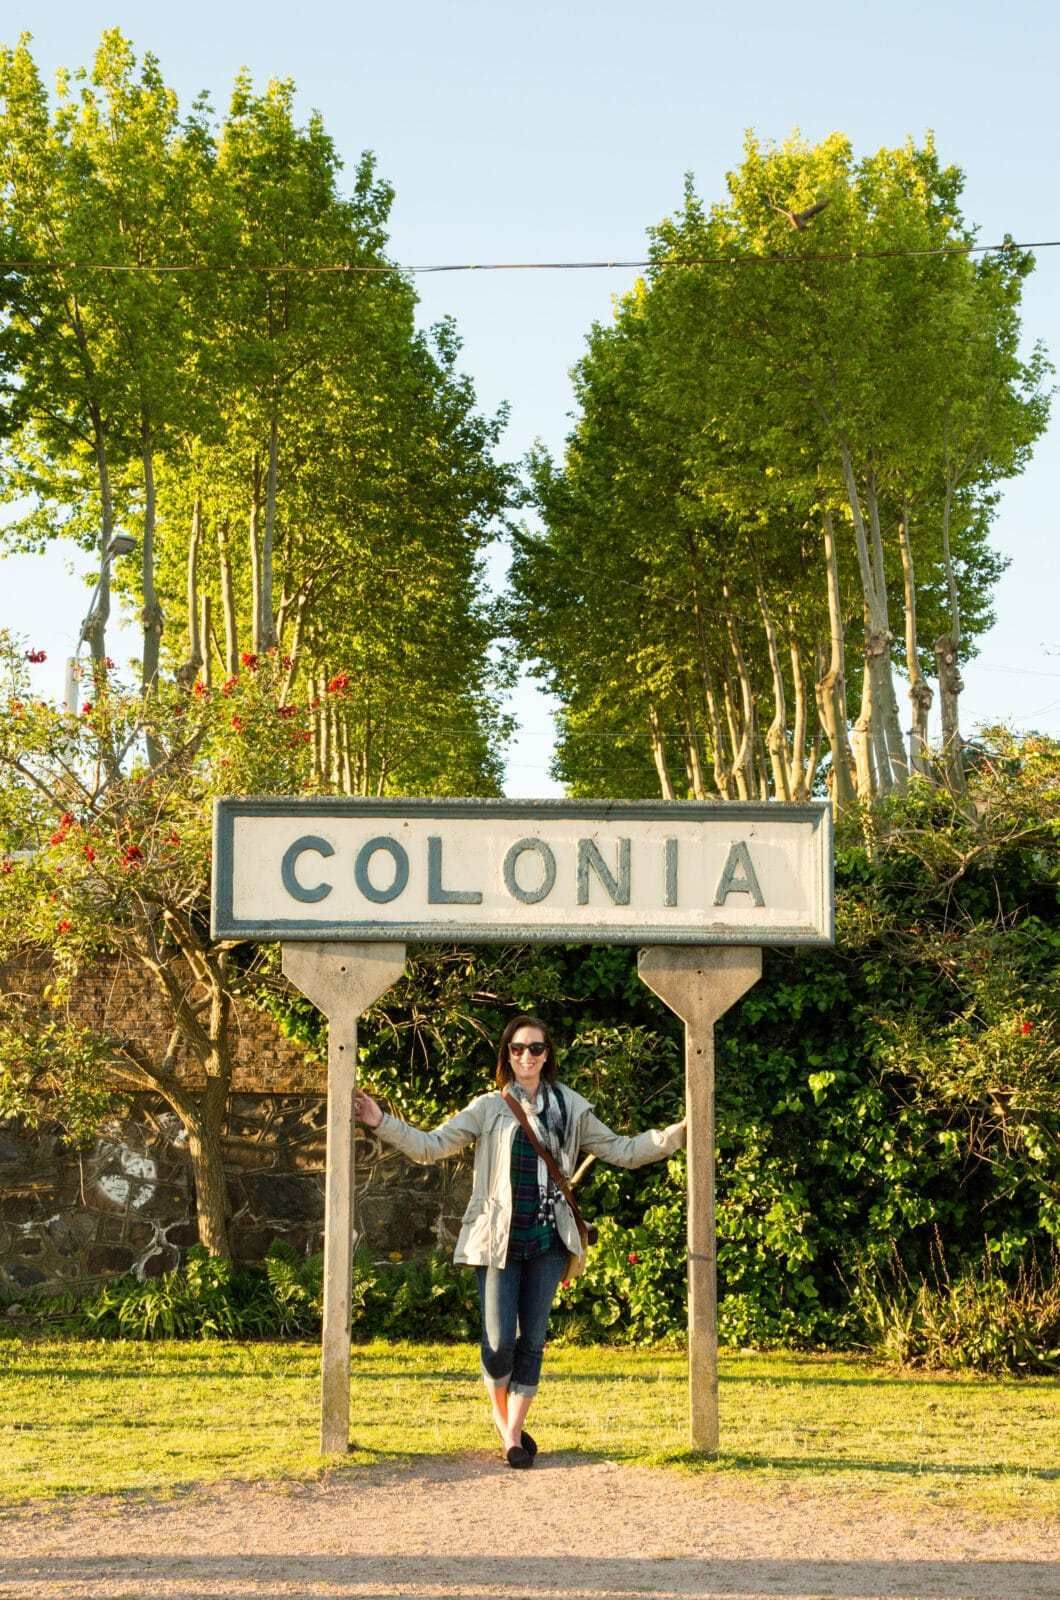 Colonia Del Sacramento Uruguay How To Do The Best Day Trip From Buenos Aires Day Trip Colonia Buenos Aires